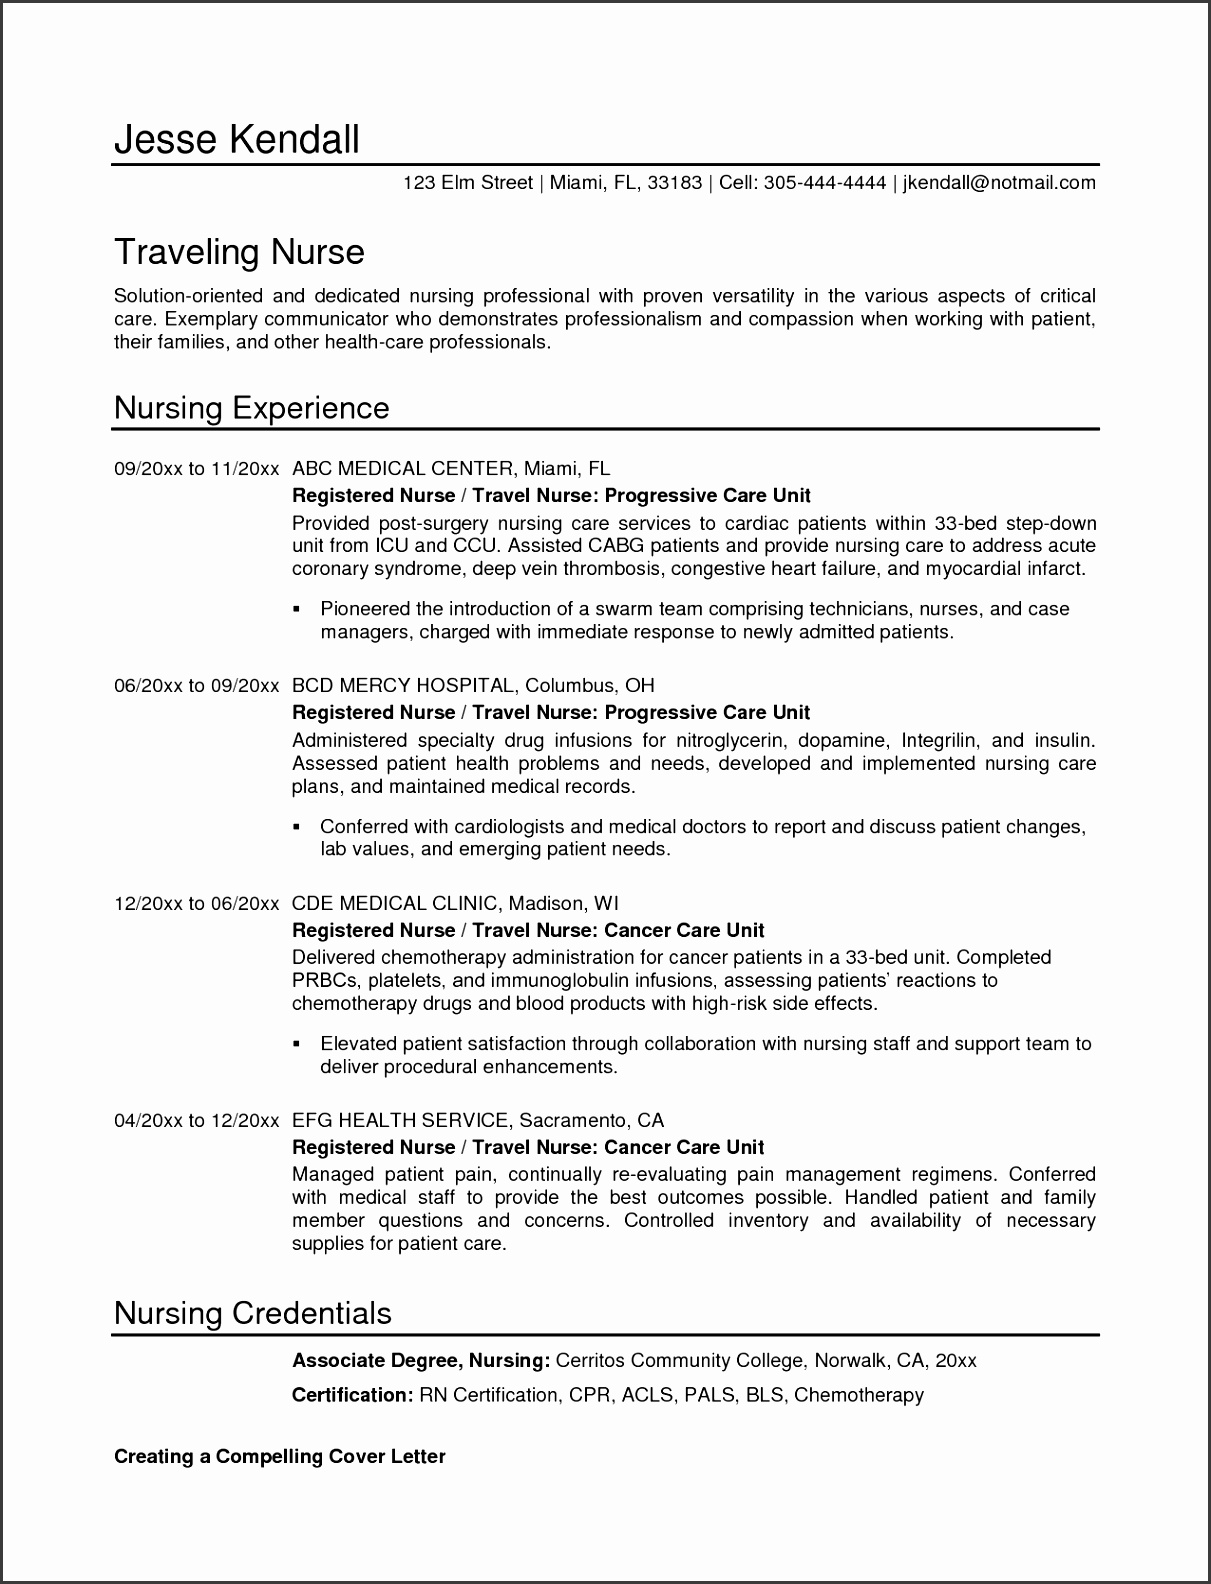 cover letter cover letter nursing resume samples new grad profile and for nurses gallery photosstudent nurse